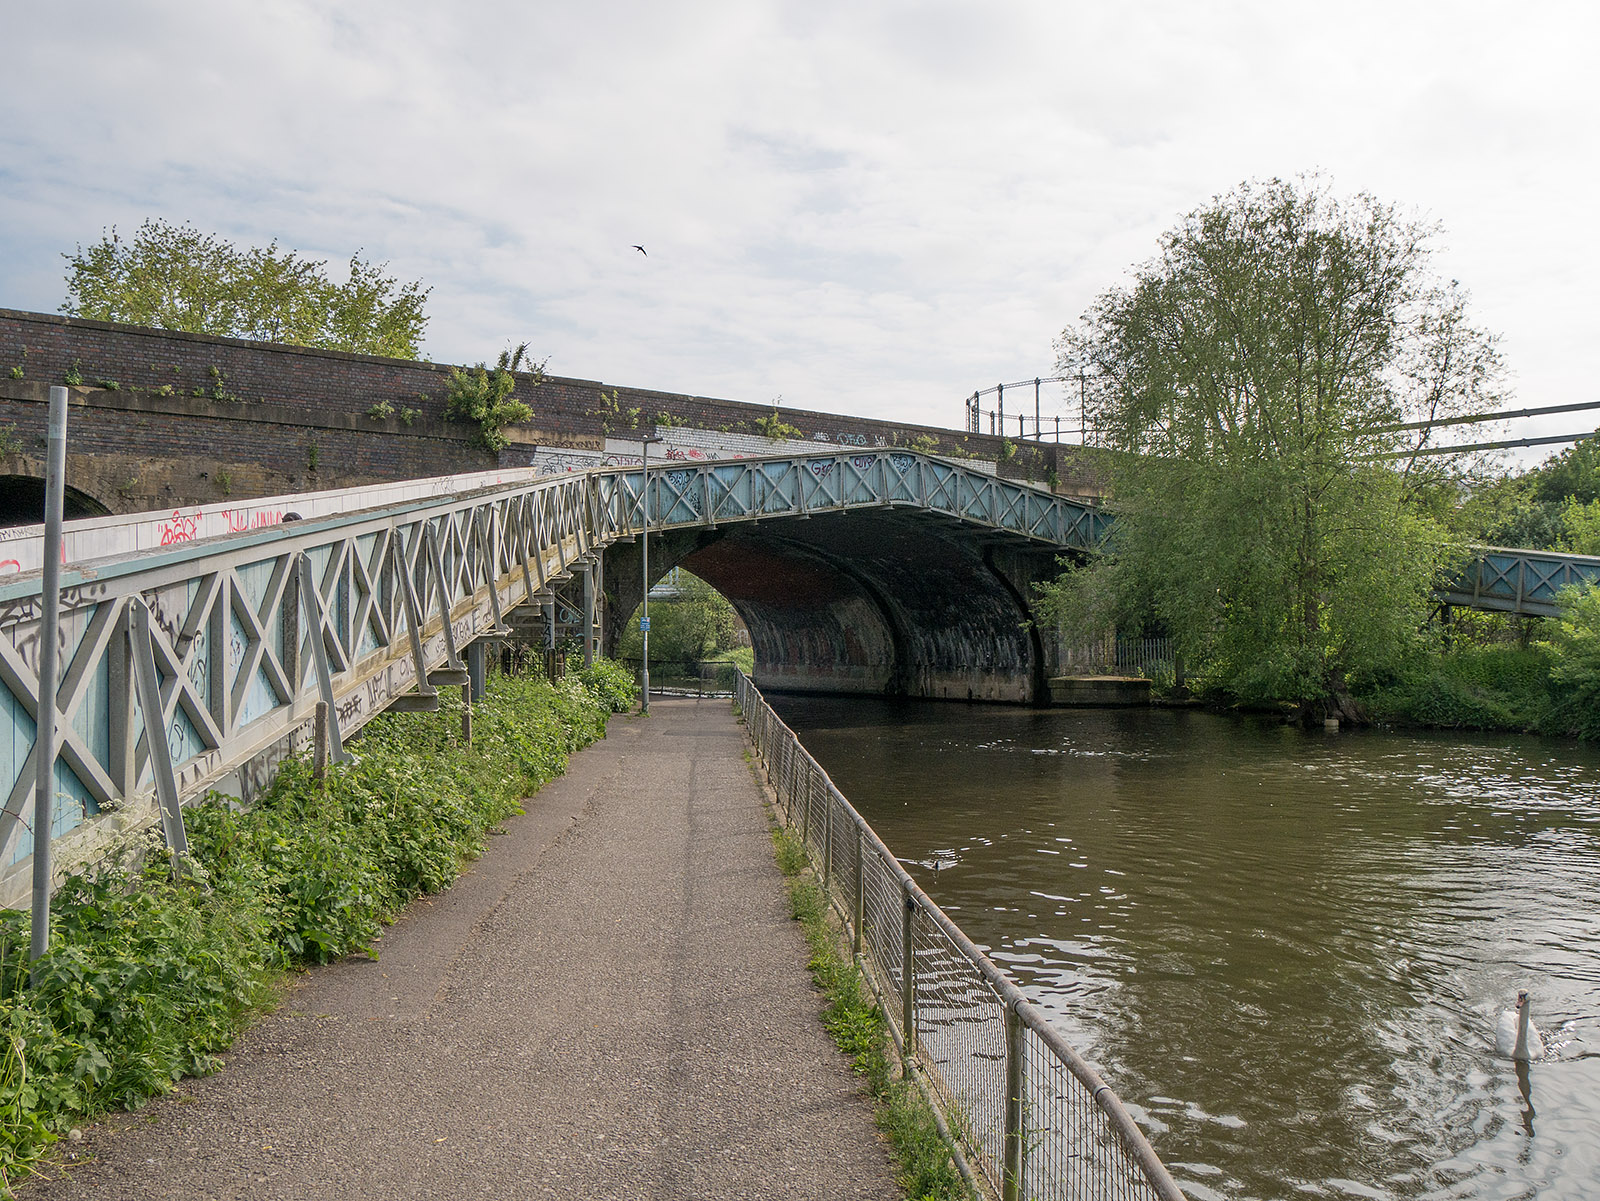 Entrance to the Kenet and Avon canal at Reading